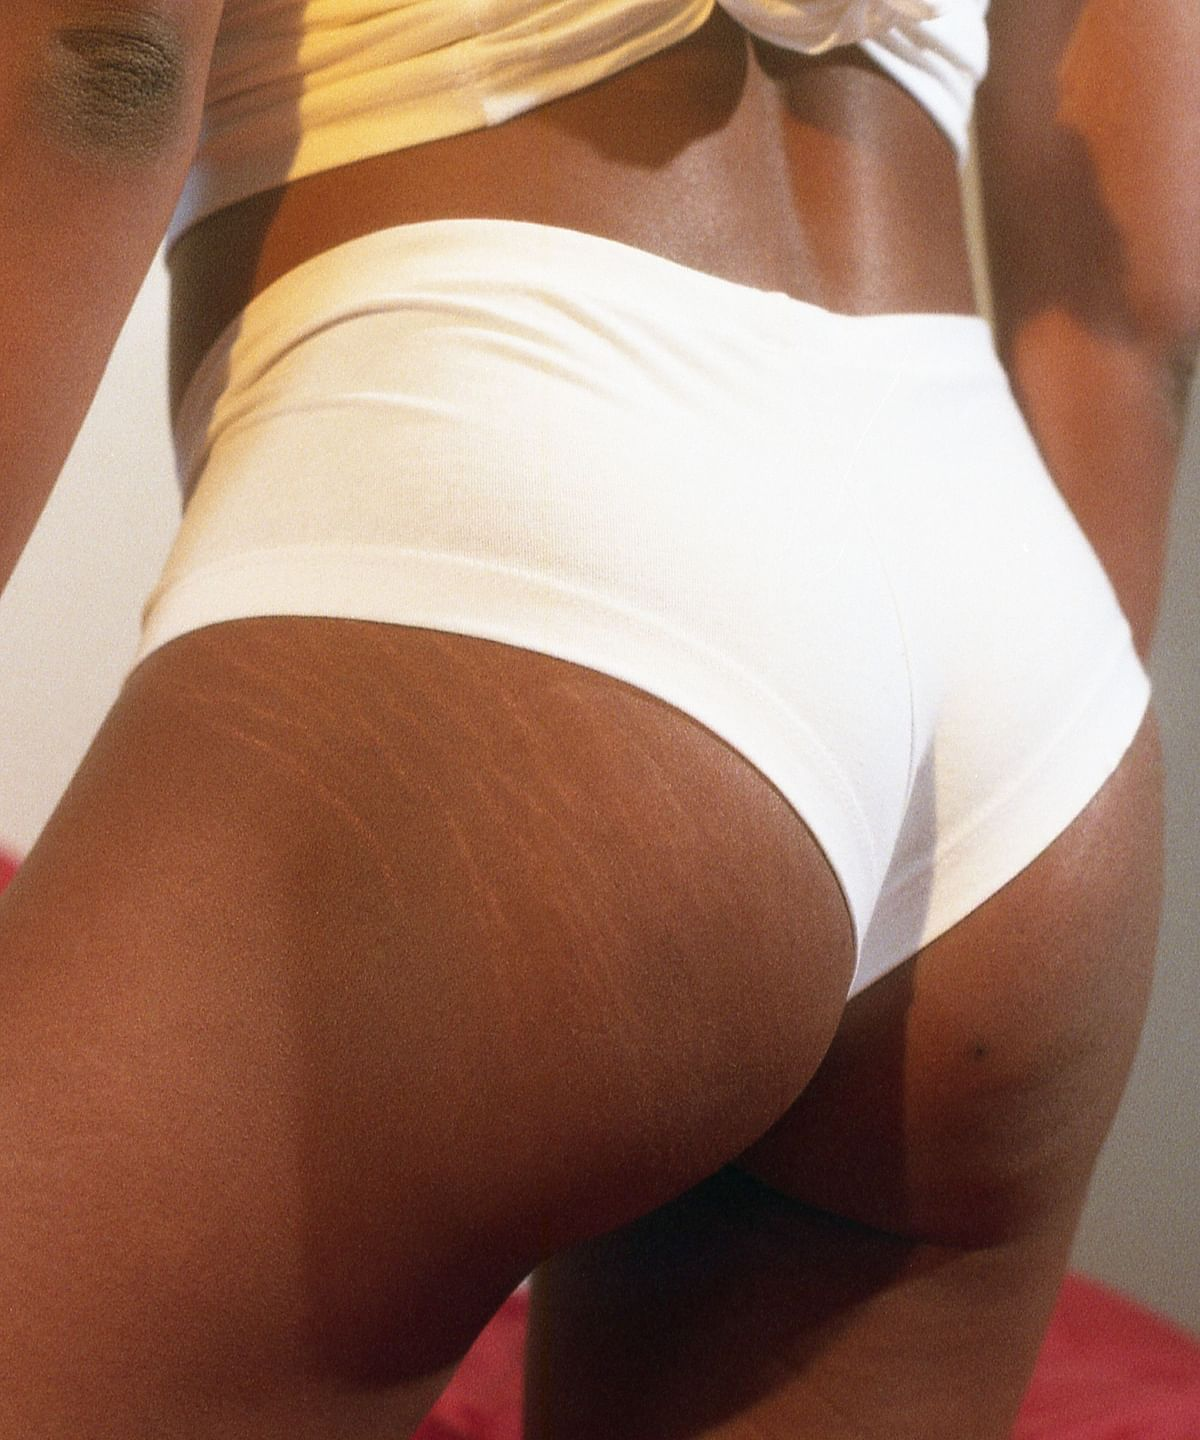 Ladies! Learn 3 Ways To Avoid Butt Rash When On Your Period